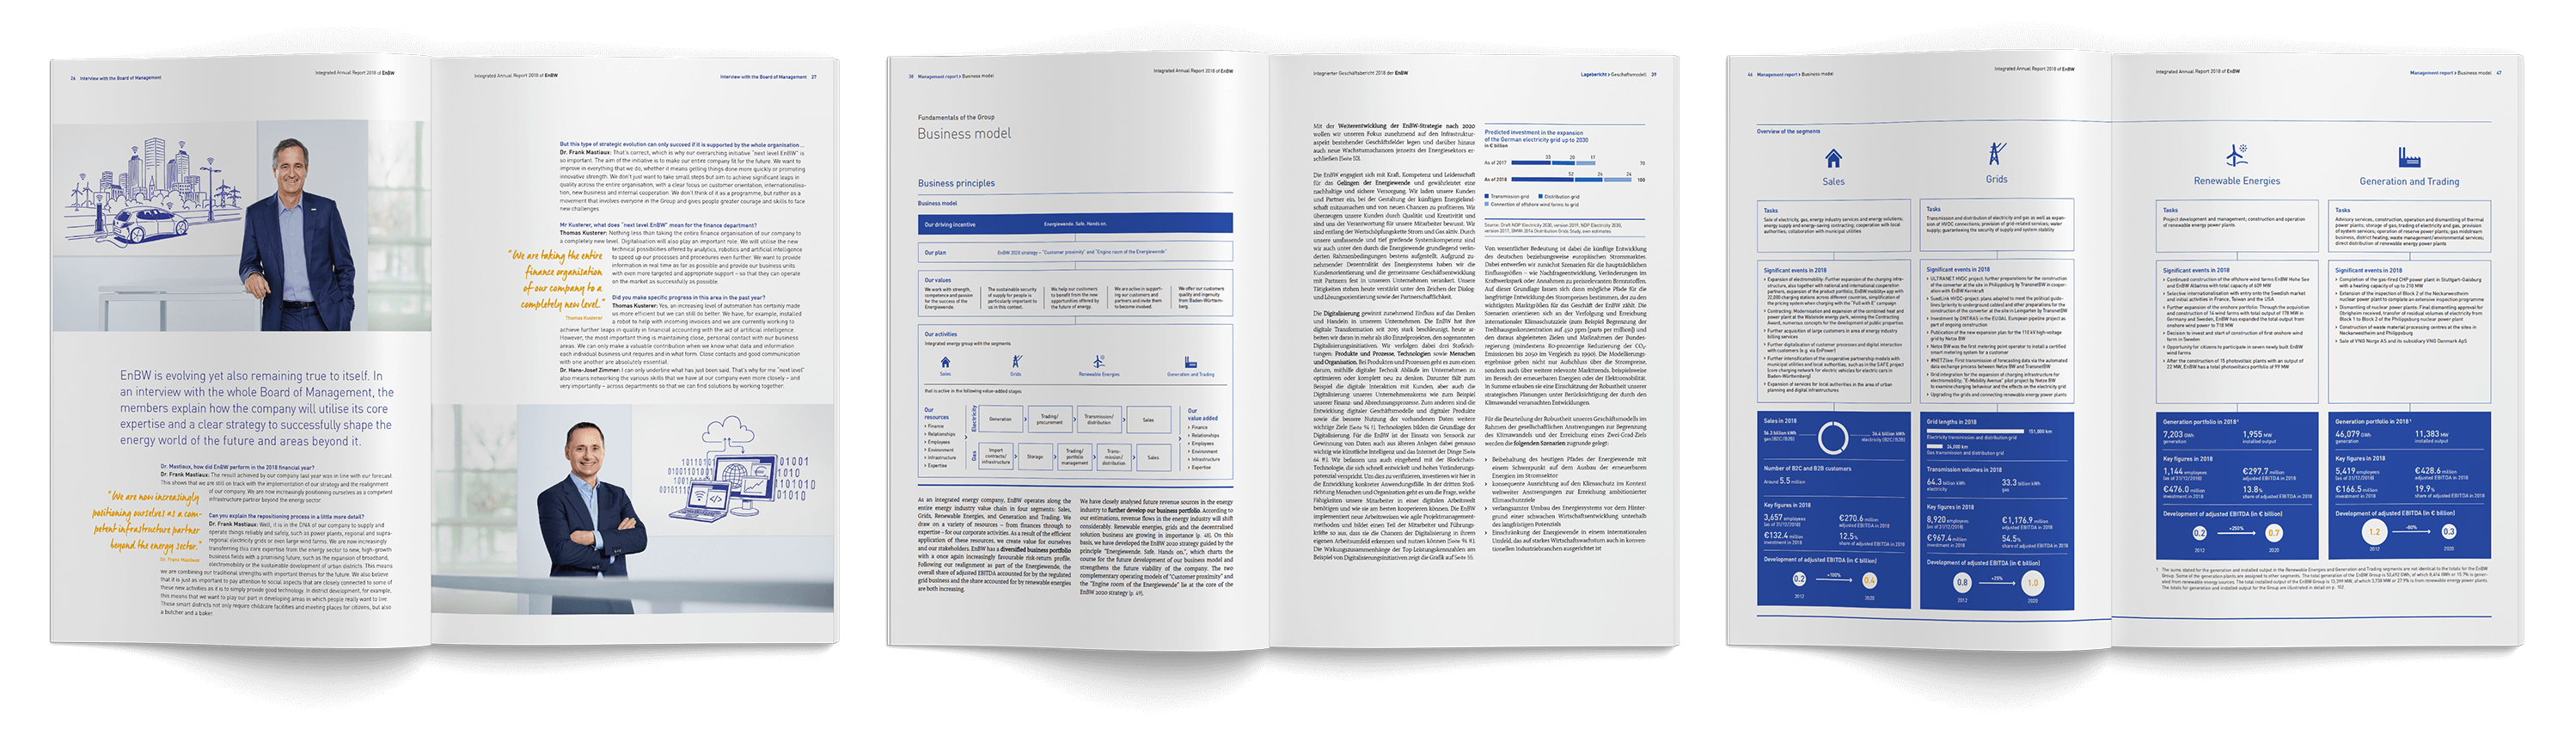 EnBW annual report 2018